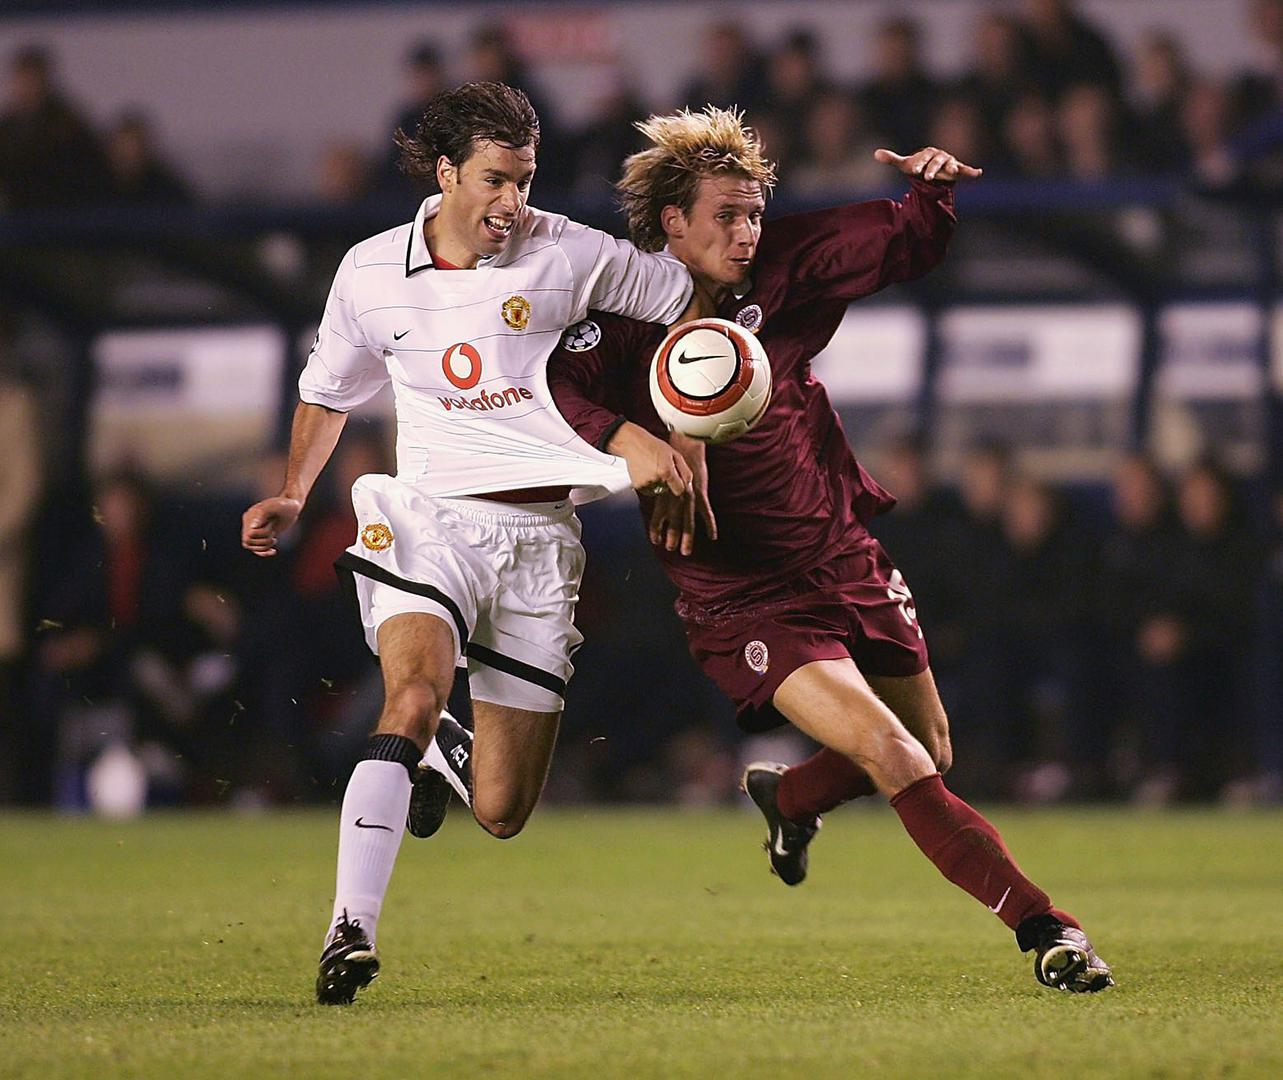 Ruud van Nistelrooy playing for Manchester United against Sparta Prague in 2004.